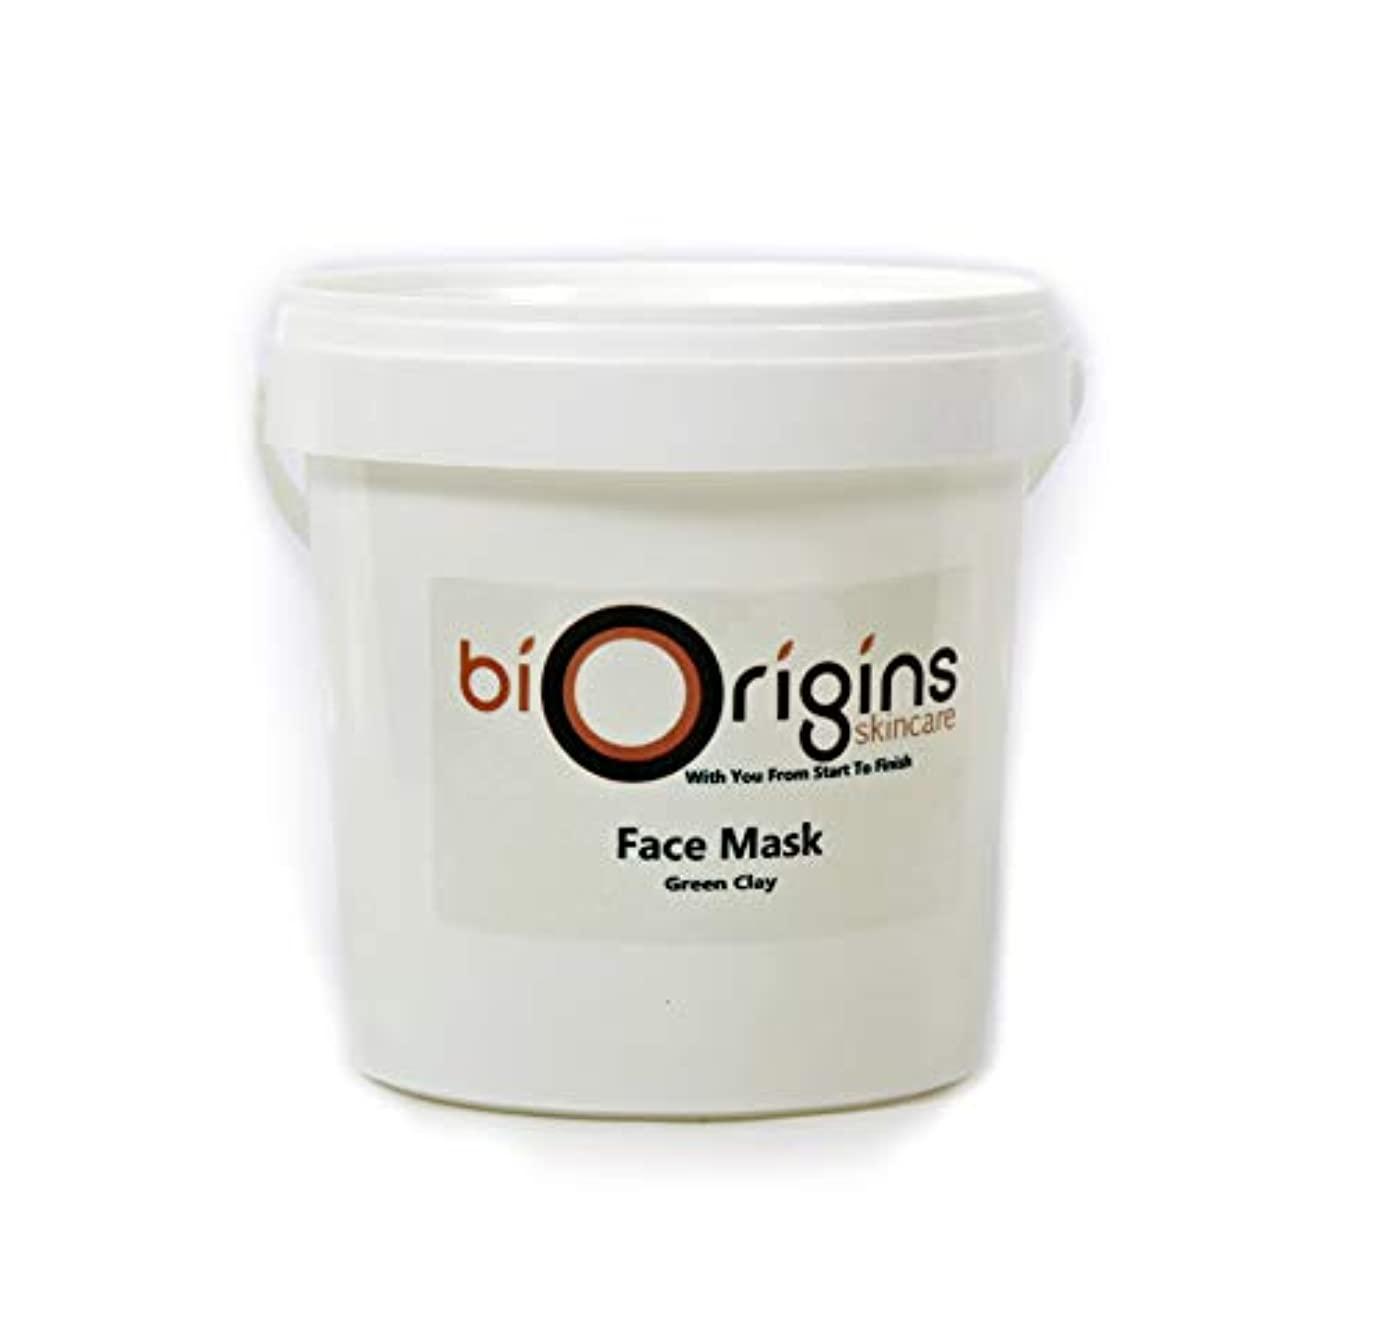 Face Mask - Green Clay - Botanical Skincare Base - 1Kg